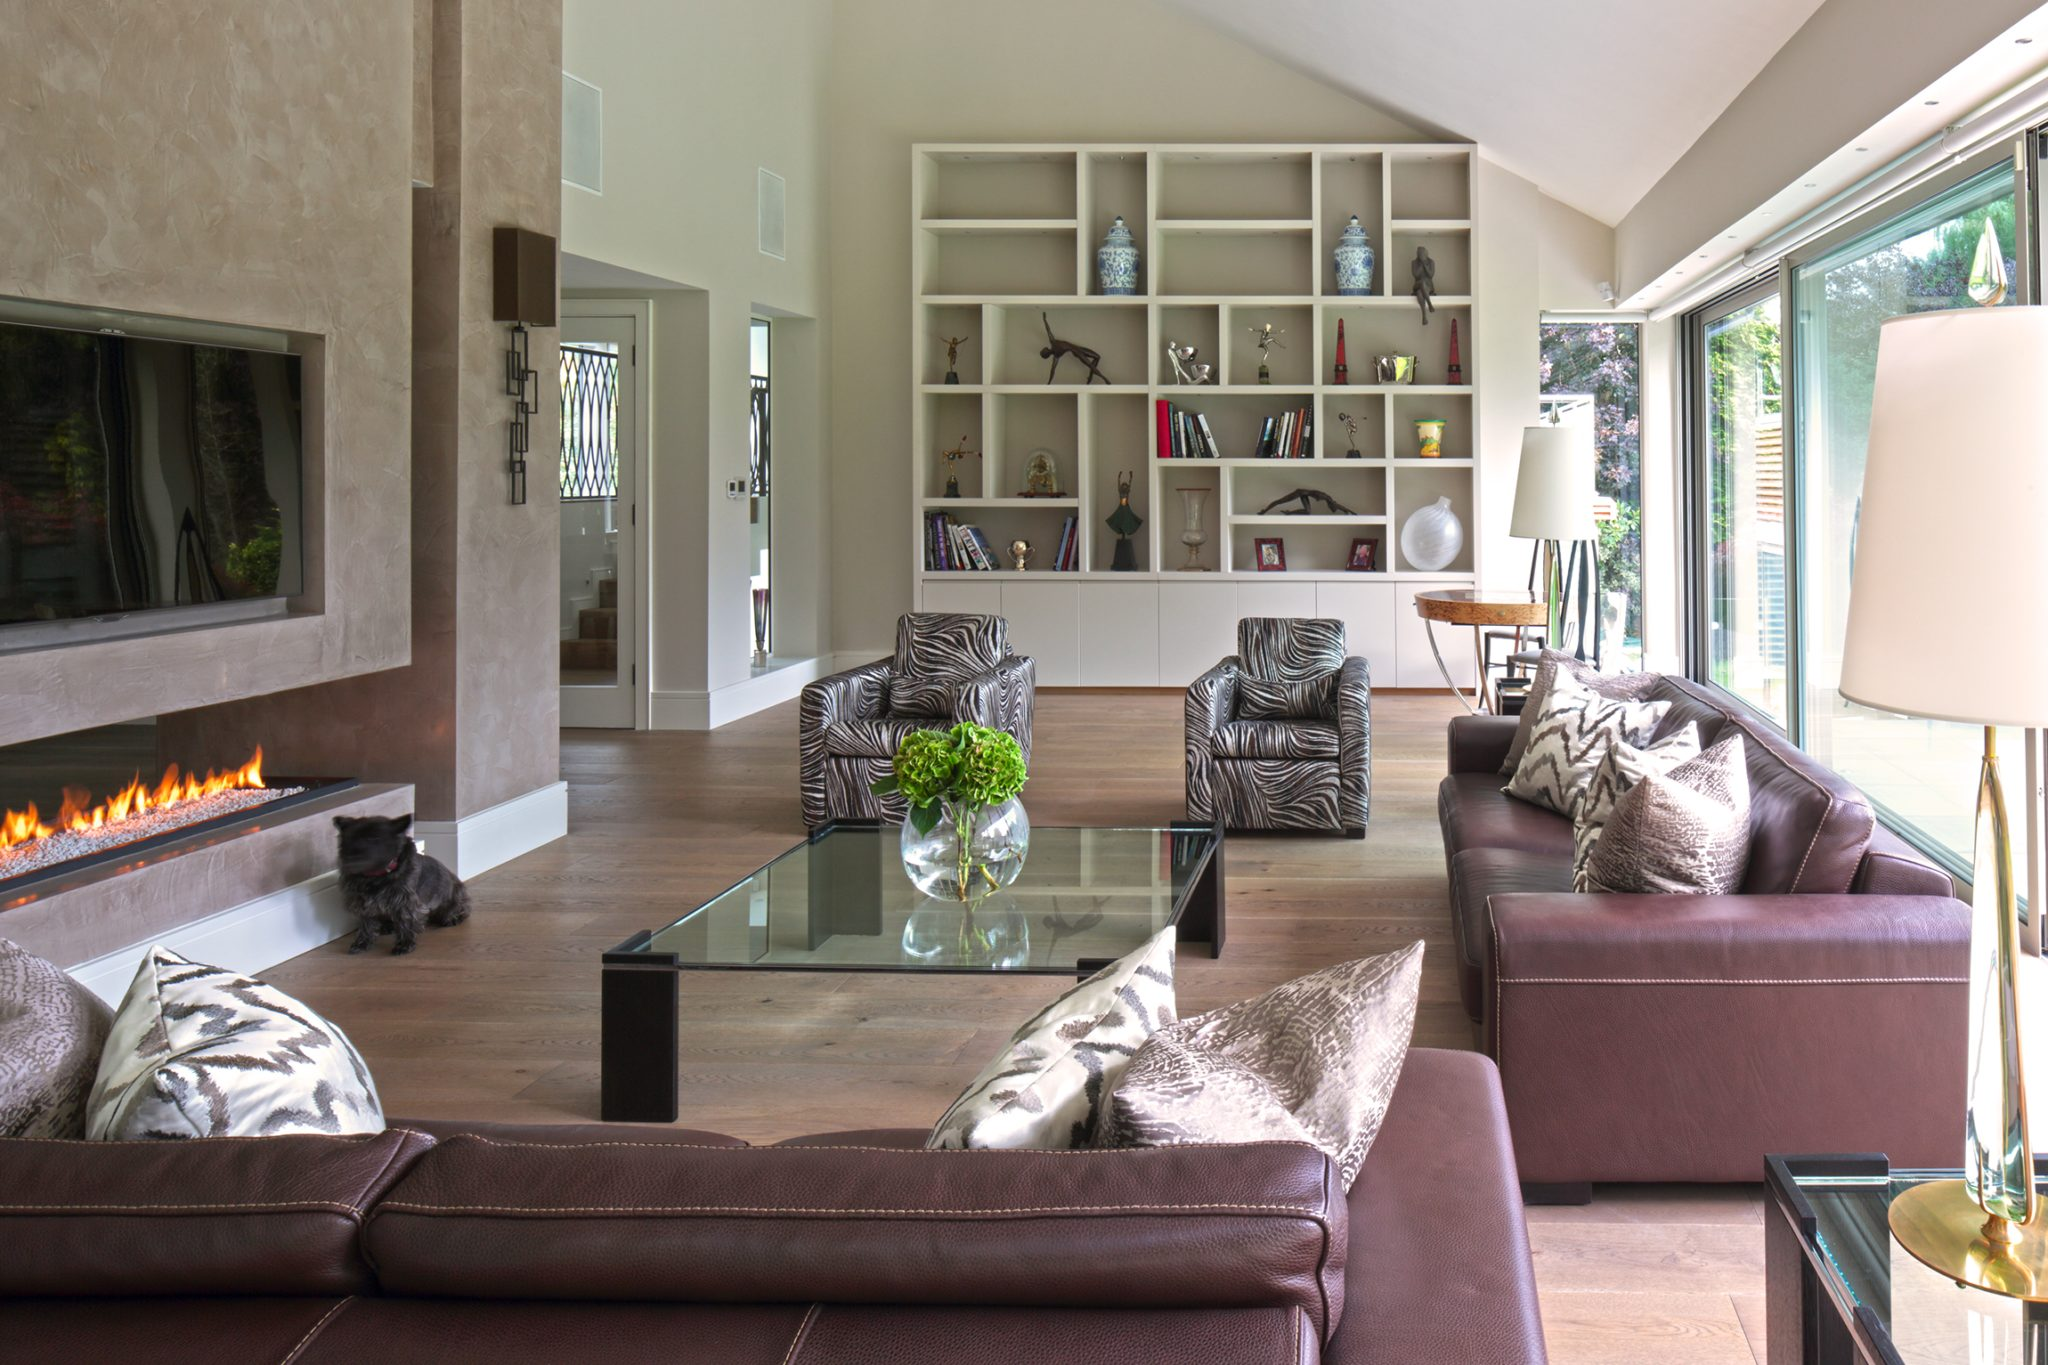 Open plan living room with bespoke joinery designed by dk interiors by dk INTERIORS